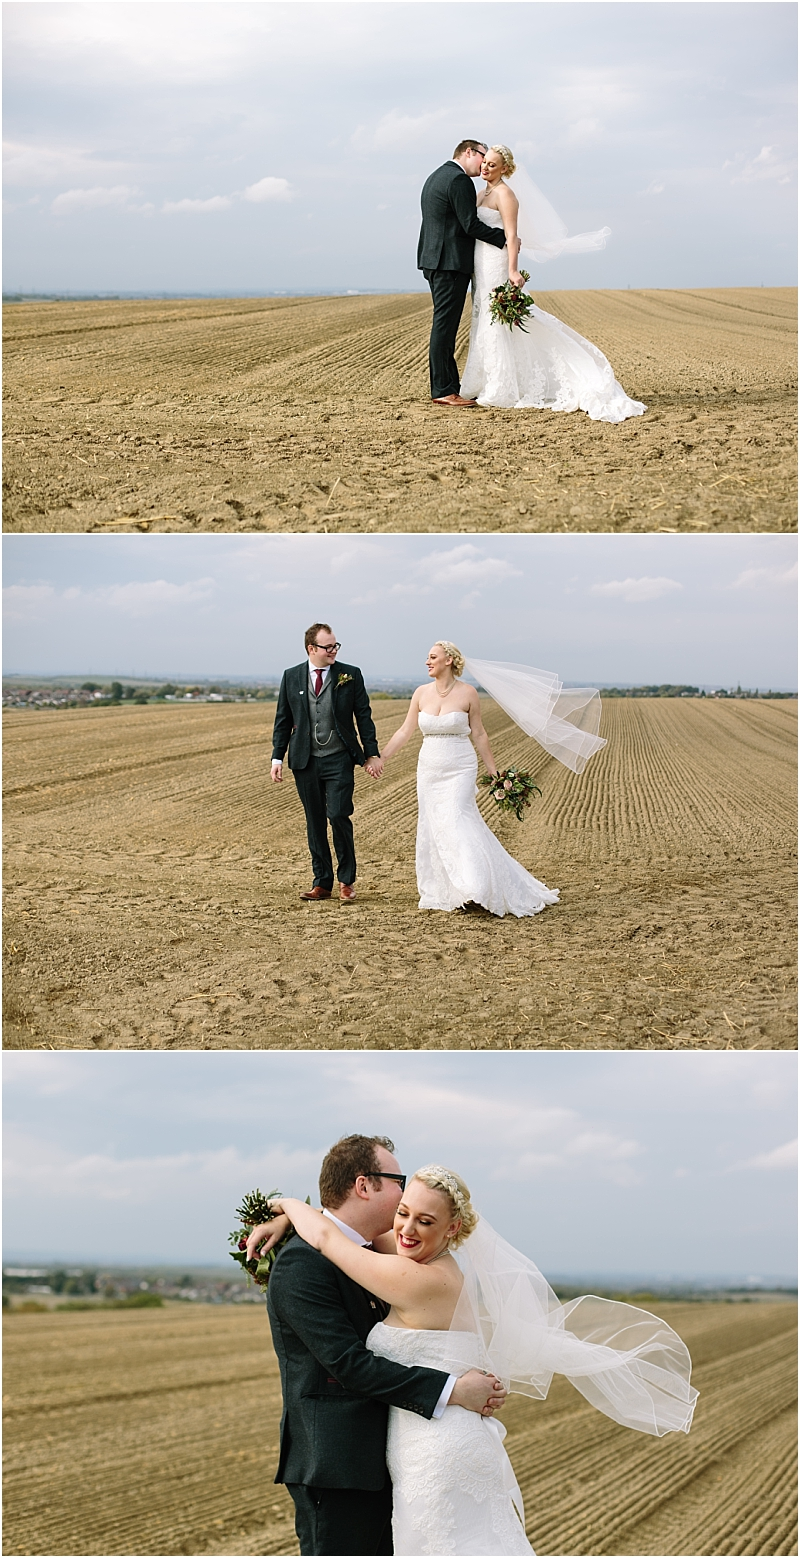 Bride and Groom in dirt field Pontefract